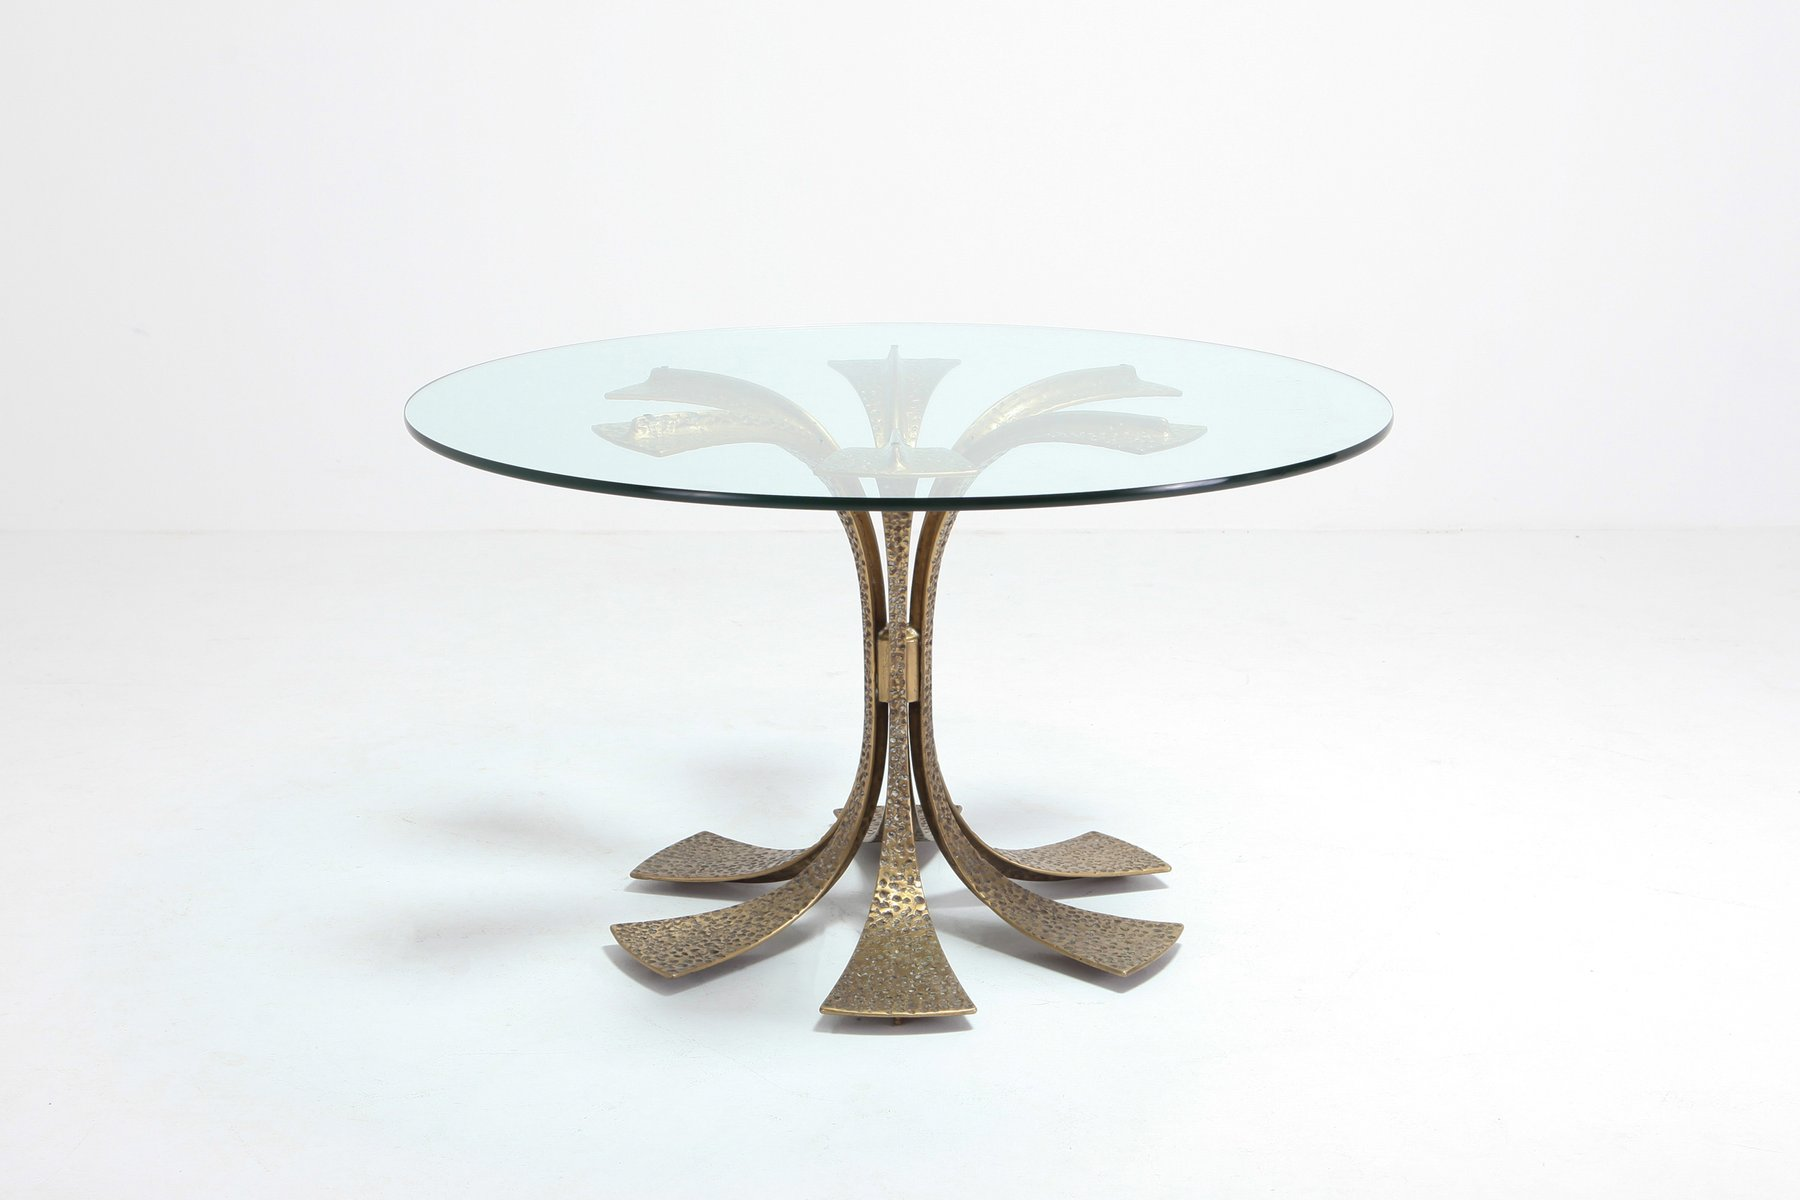 Hollywood Regency Hammered Brass Dining Table by Luciano Frigerio, 197...